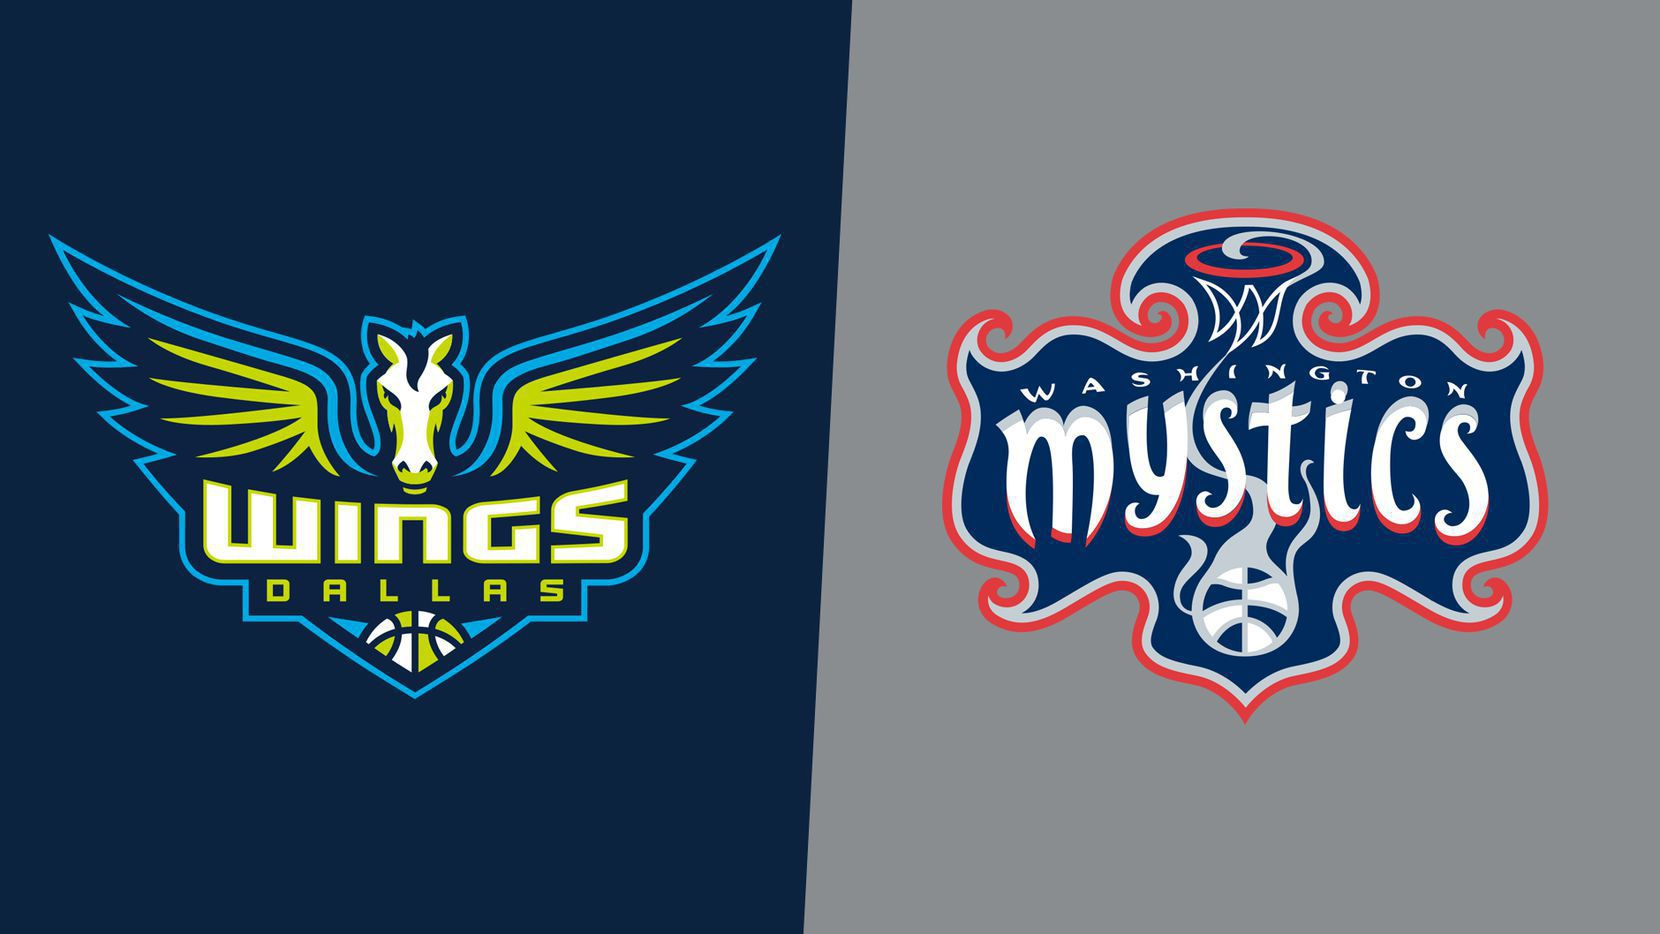 Dallas Wings/Washington Mystics logos